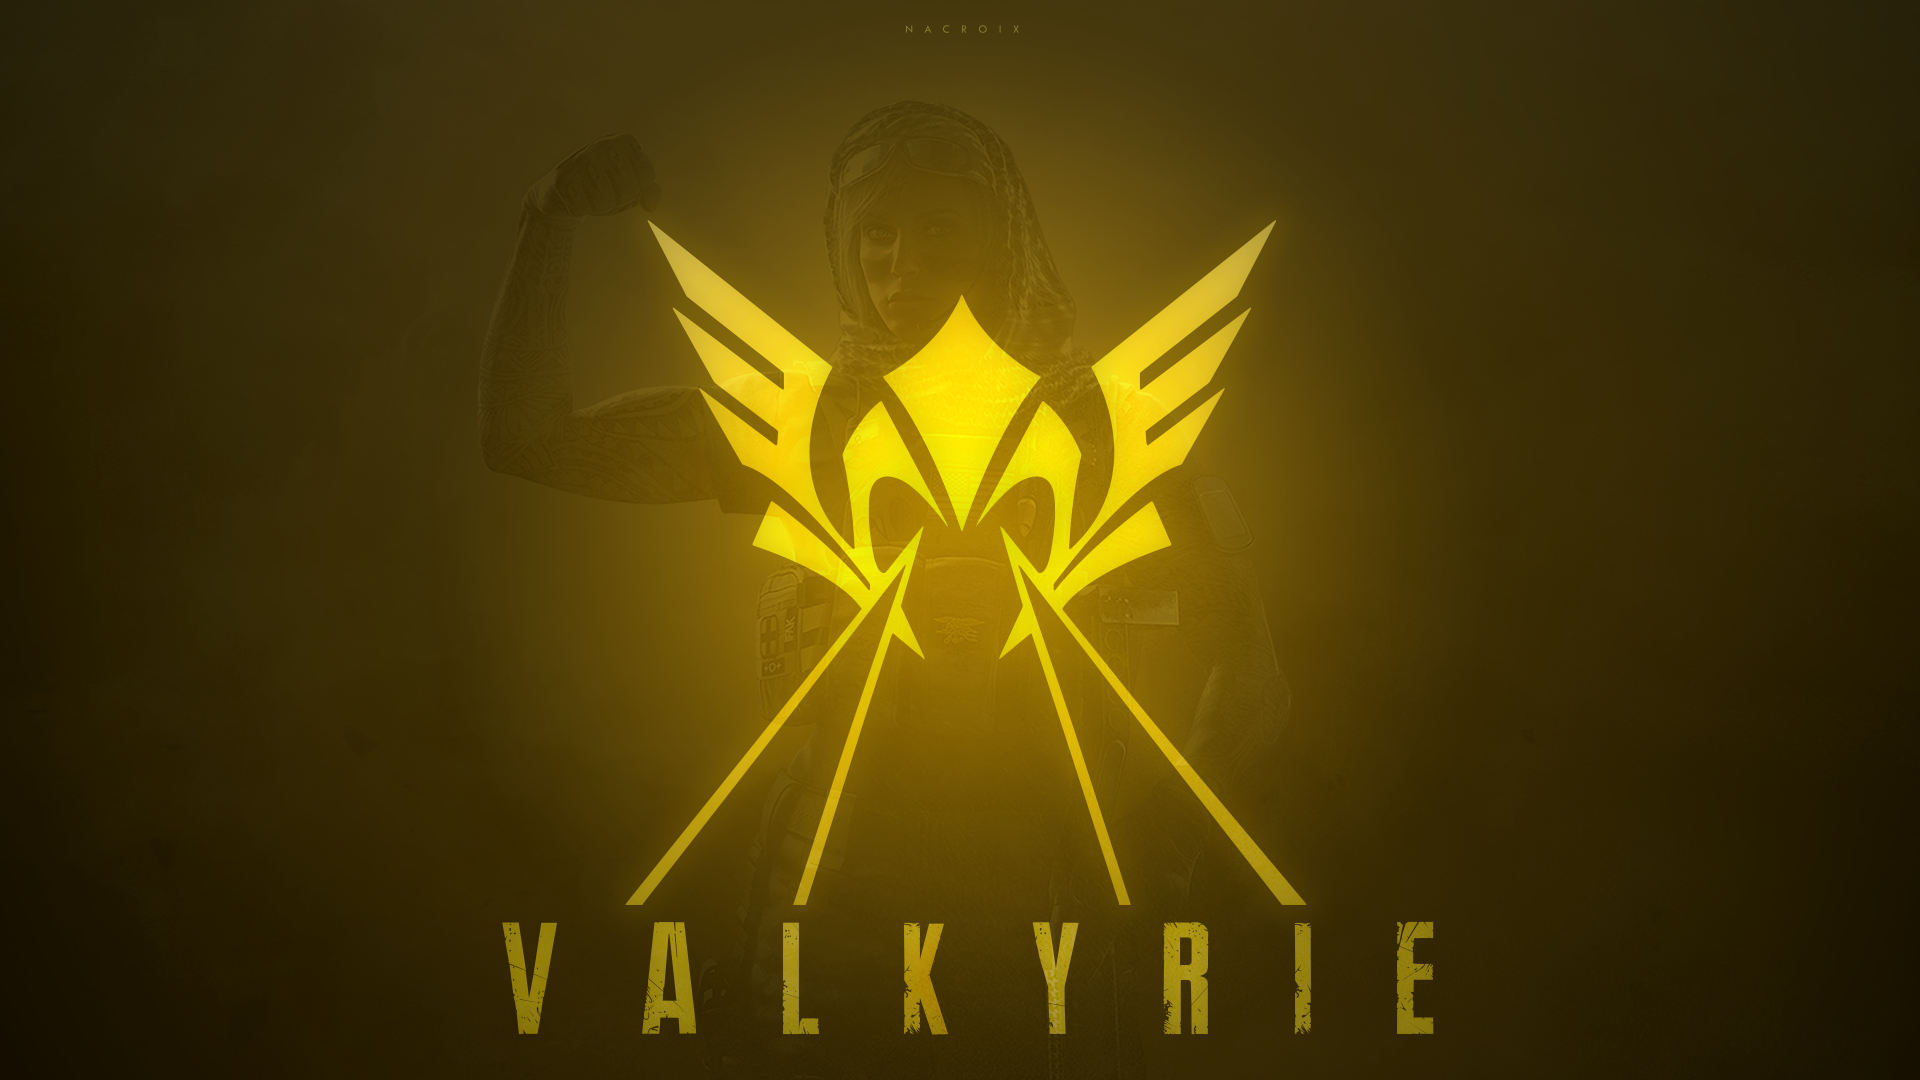 Valkyrie 8k Ultra Hd Wallpaper Background Image 12000x6750